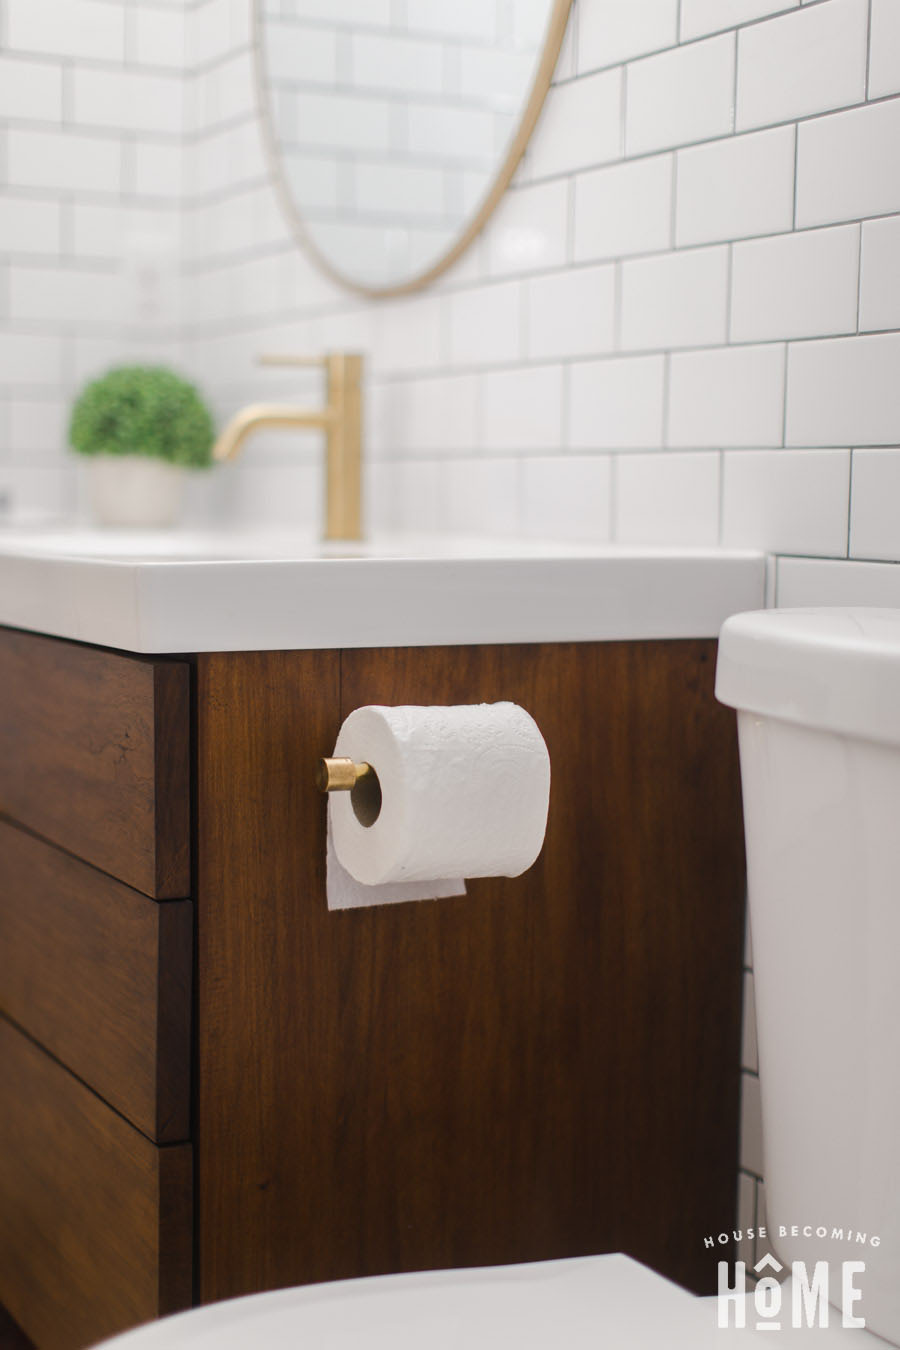 Finished Brass Toilet Paper Holder Mounted to Vanity